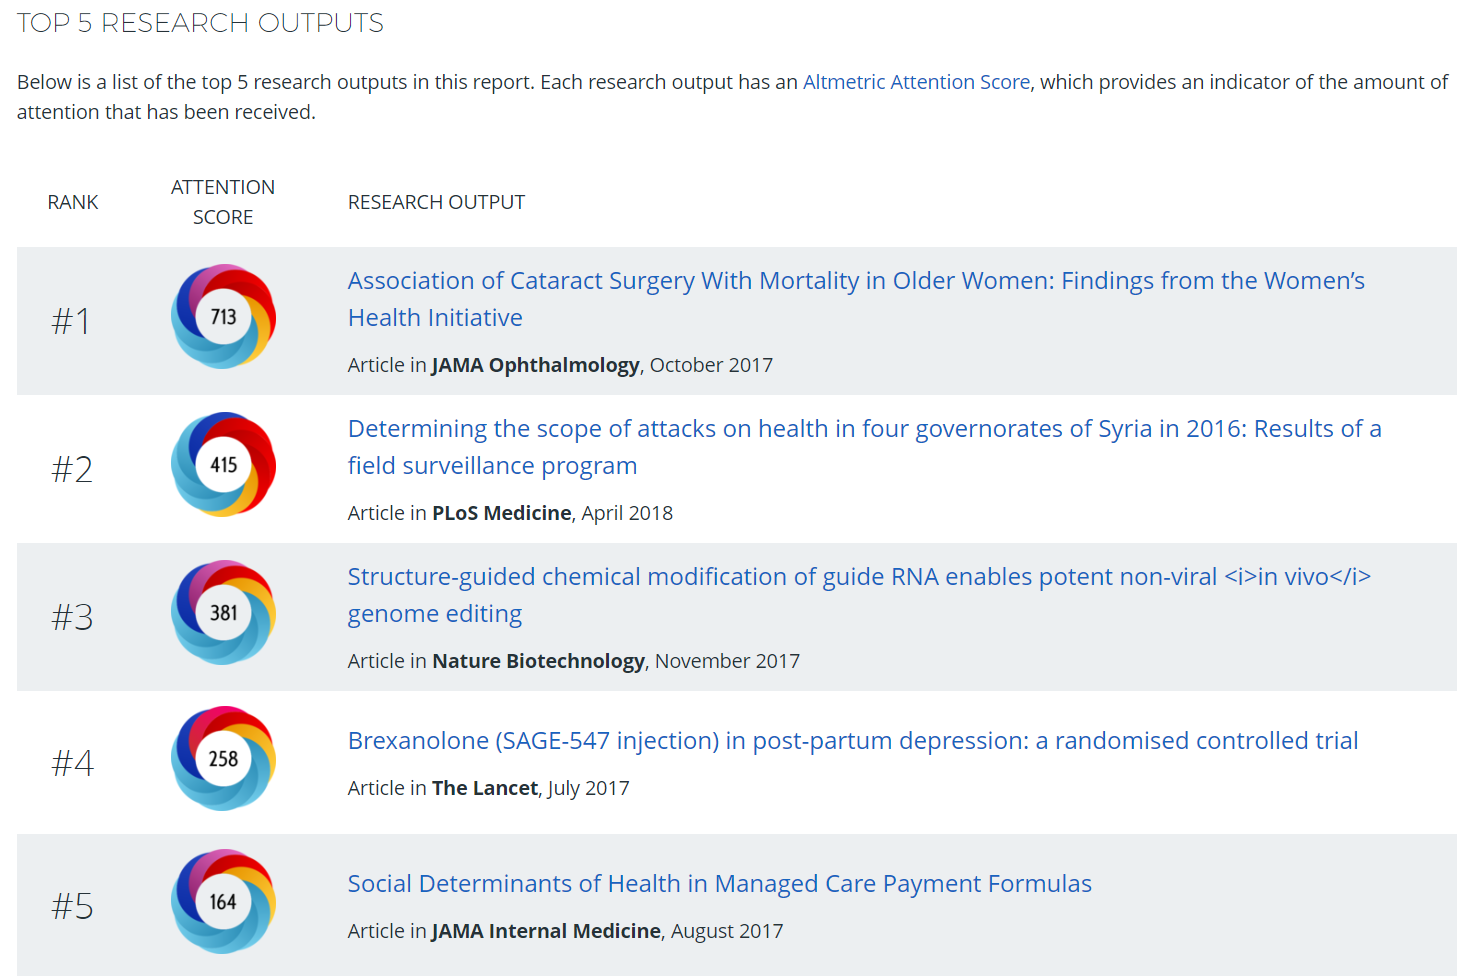 Top 5 Altmetric Scores from Altmetric Explorer for Institutions Report